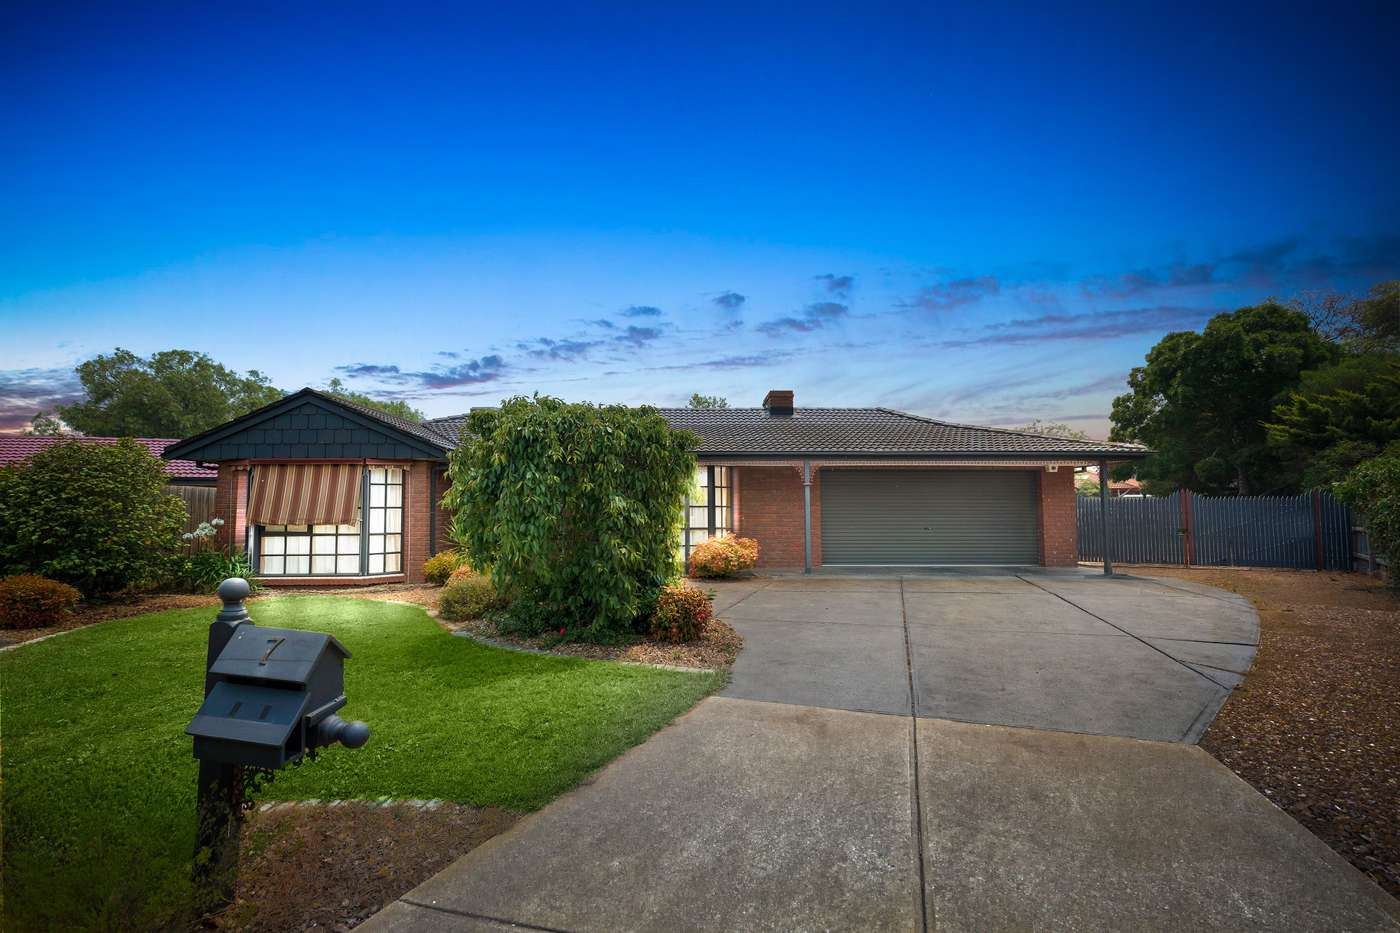 Main view of Homely house listing, 7 Goodwin Close, Hoppers Crossing, VIC 3029